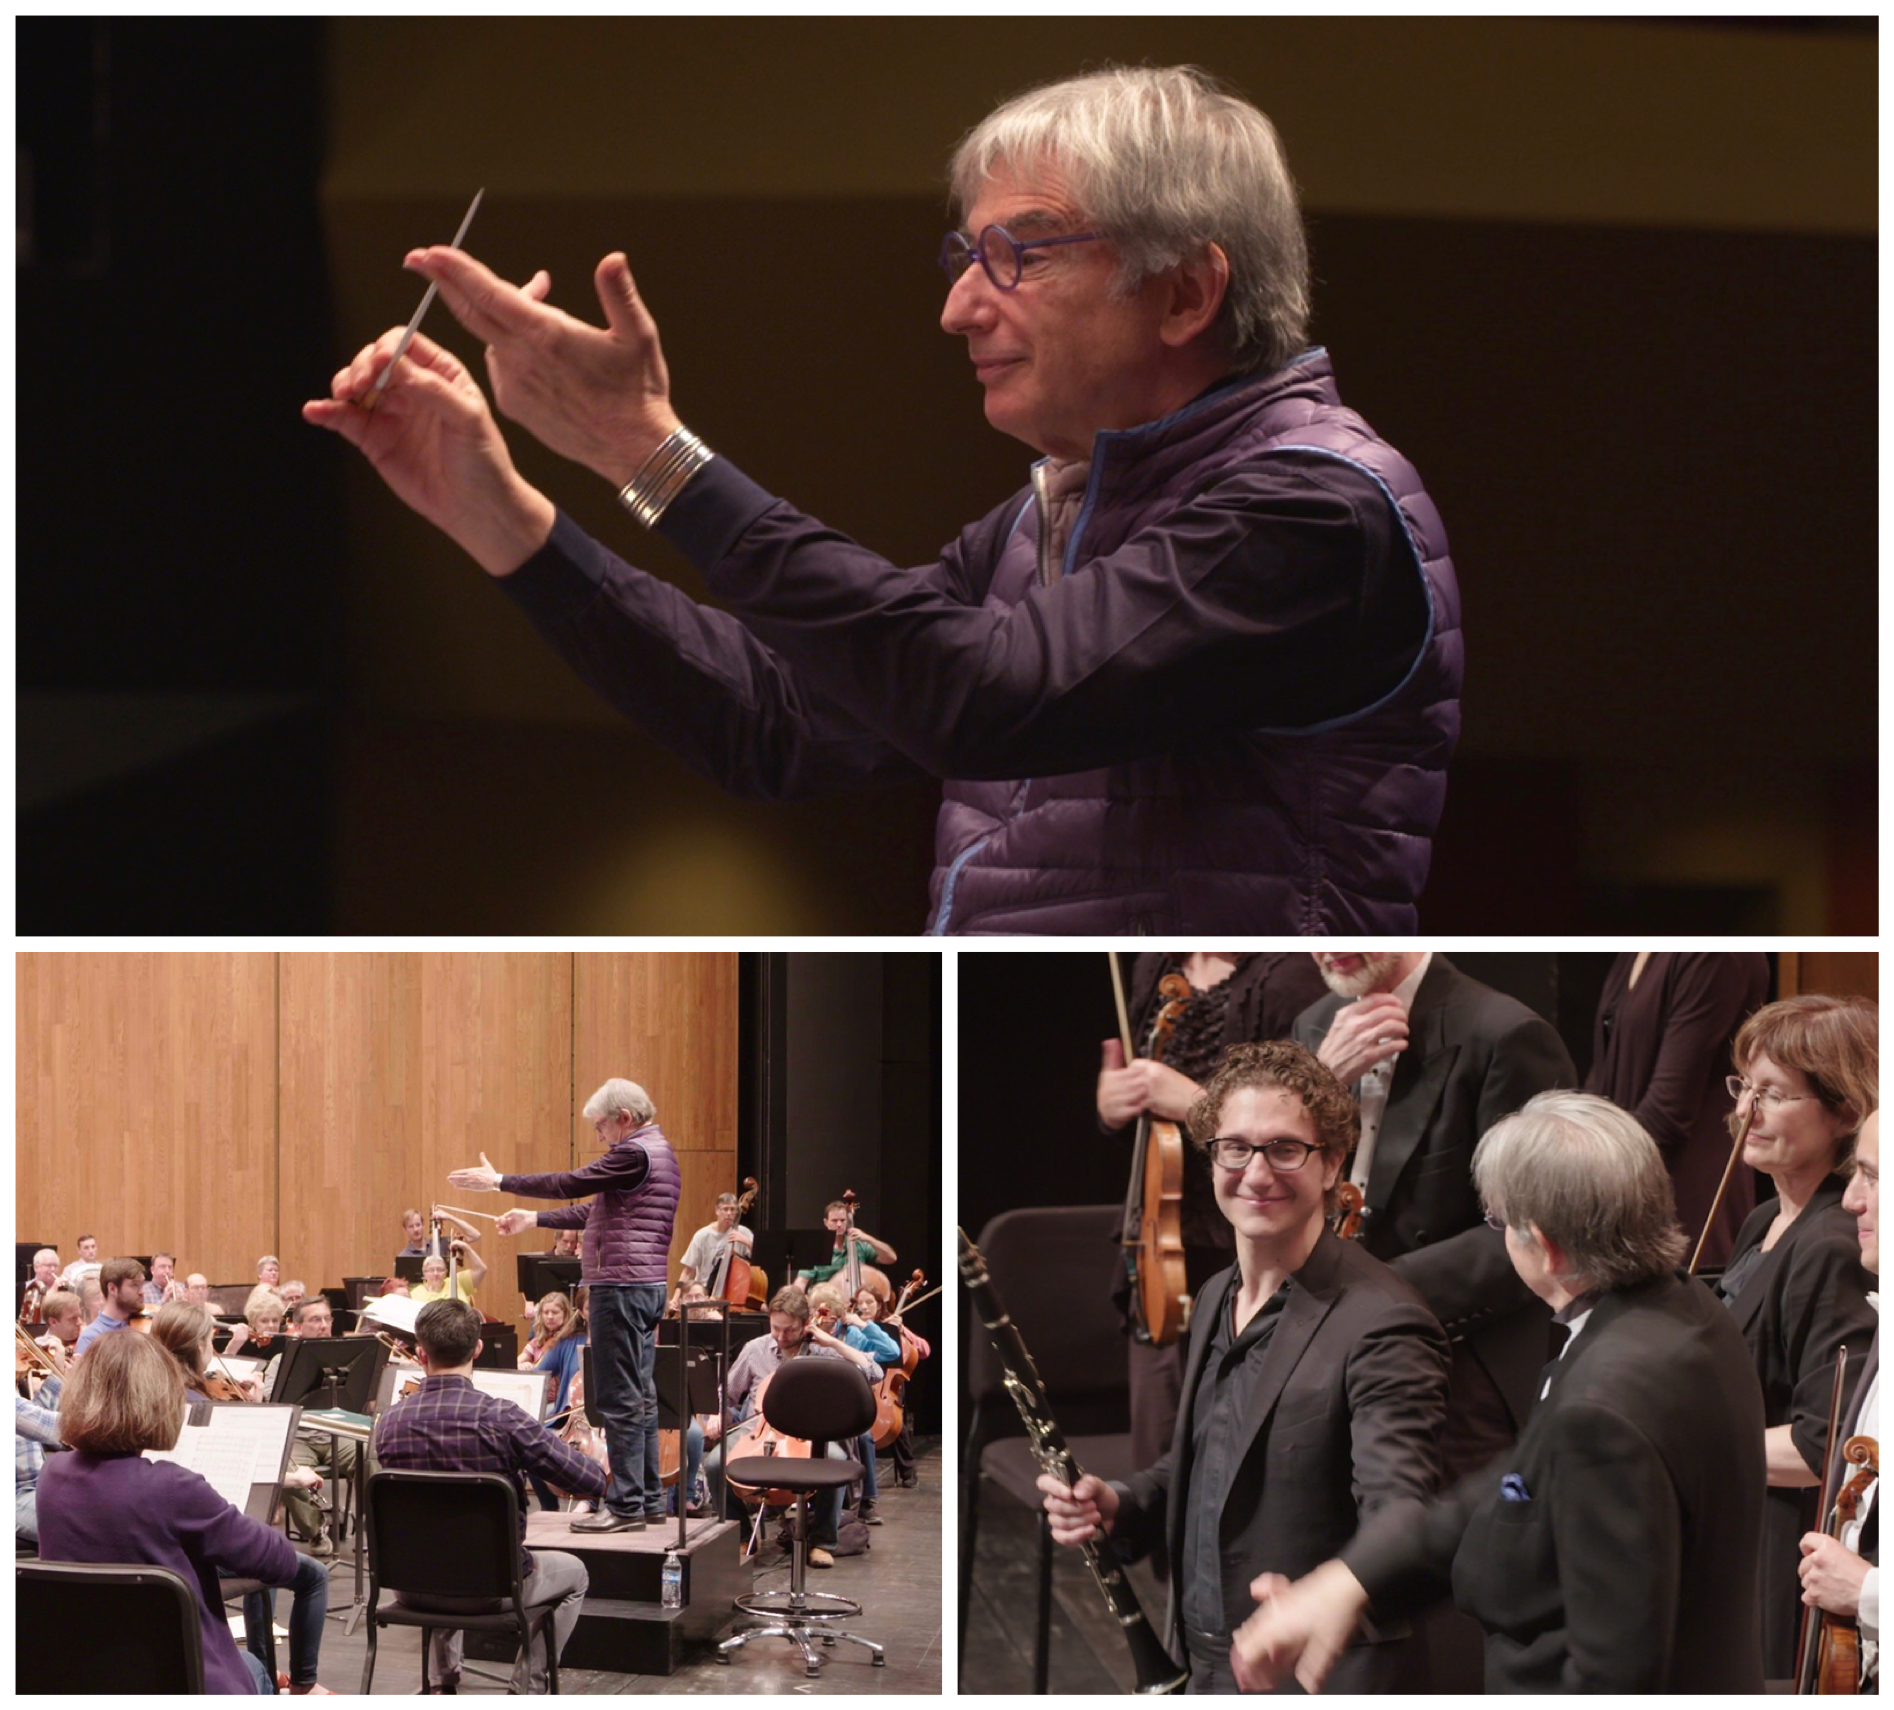 MTT and the Louisville Orchestra rehearse, mentor and mentee take a bow